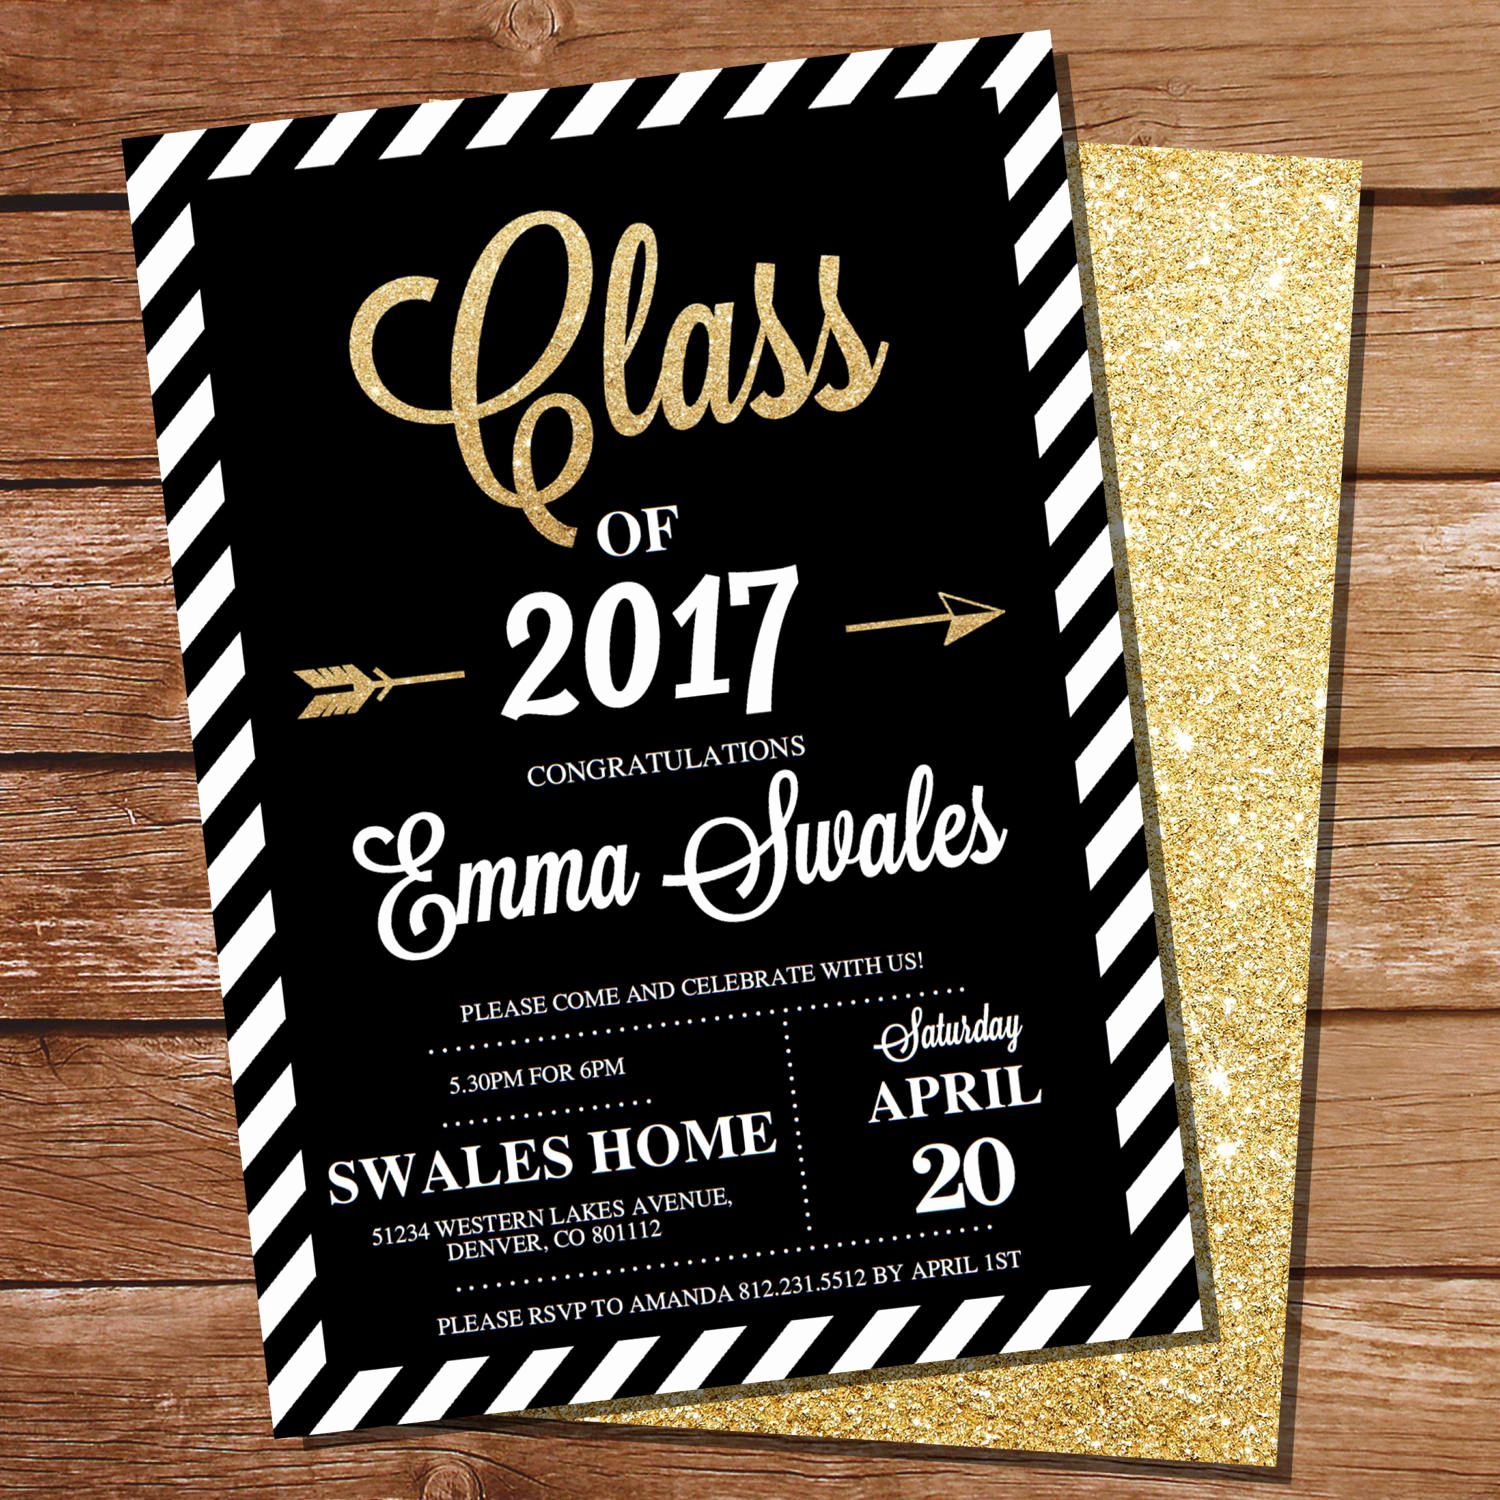 Graduation Invitation Card Ideas New Graduation Invitation Black and Gold Graduation Invitation